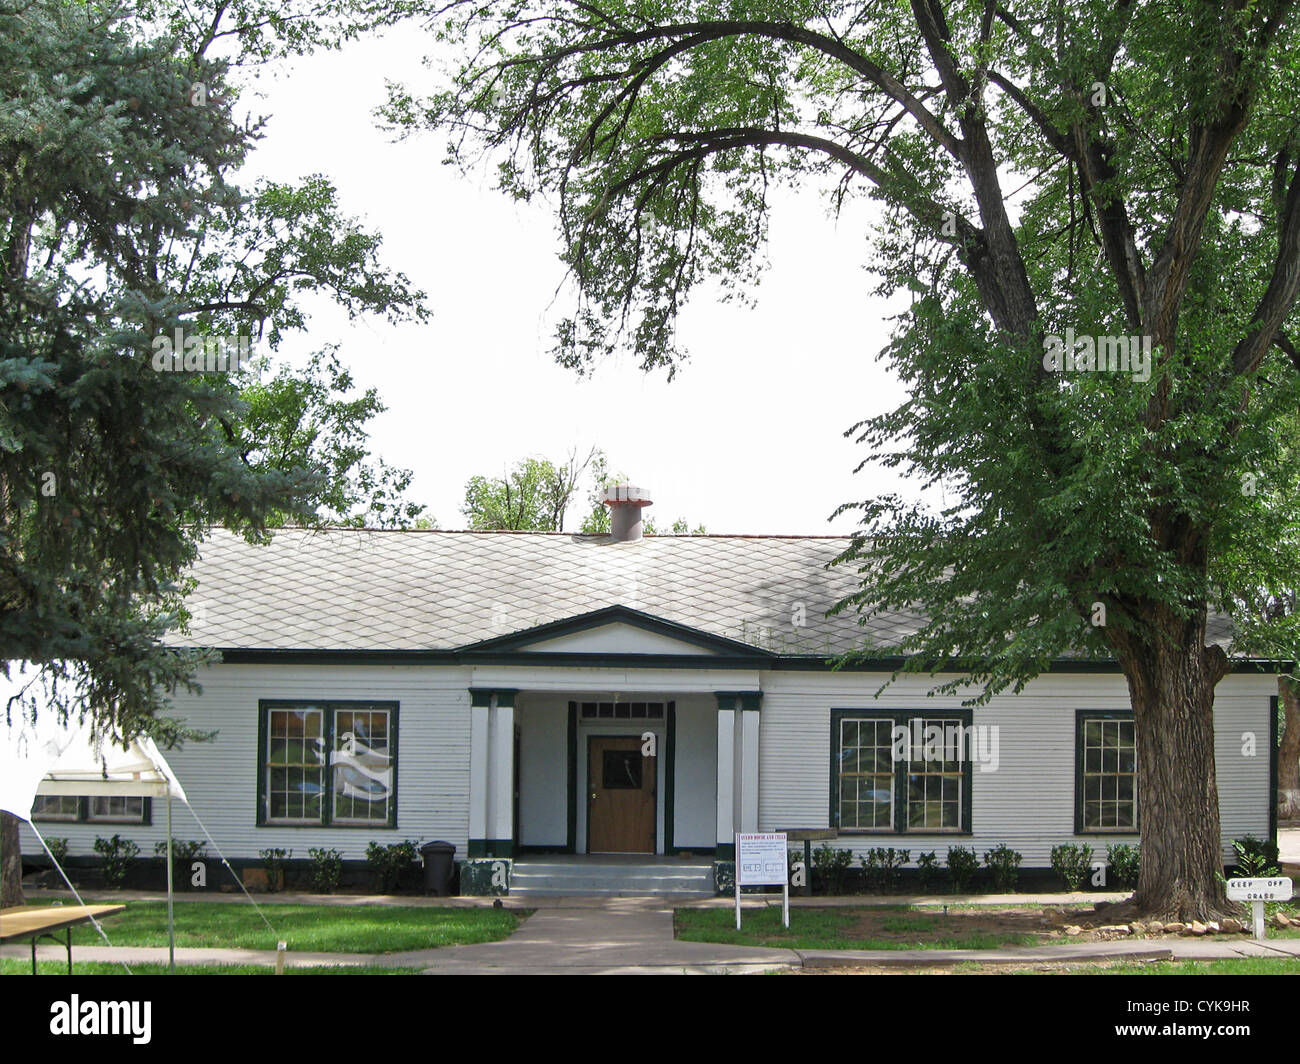 Guard house and cells building at fort stanton new mexico stock image